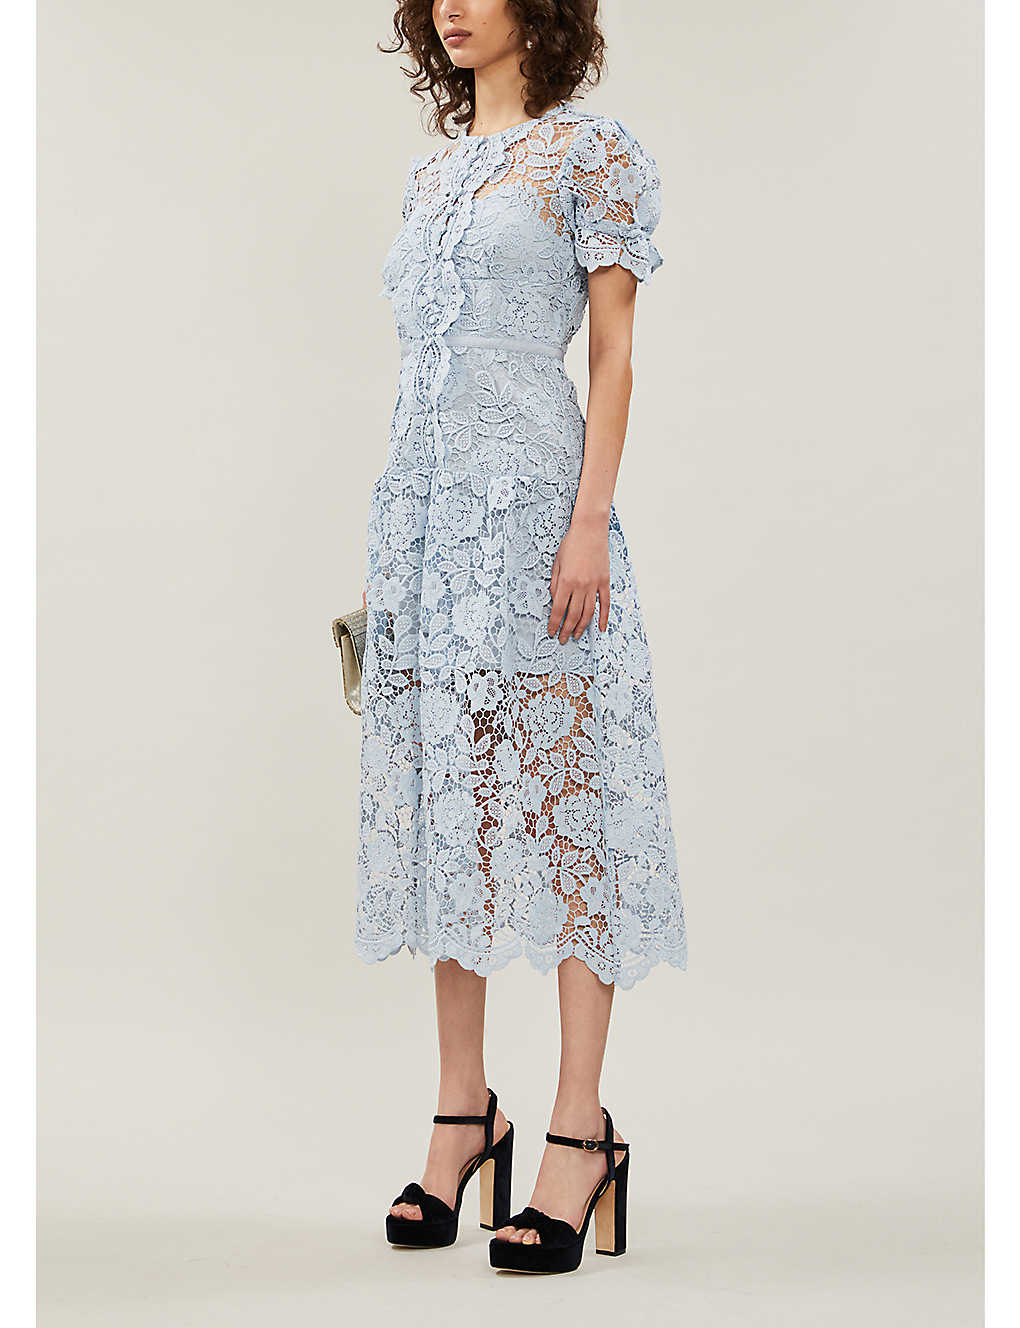 SELF PORTRAIT Puff-sleeve Floral-lace Midi Dress